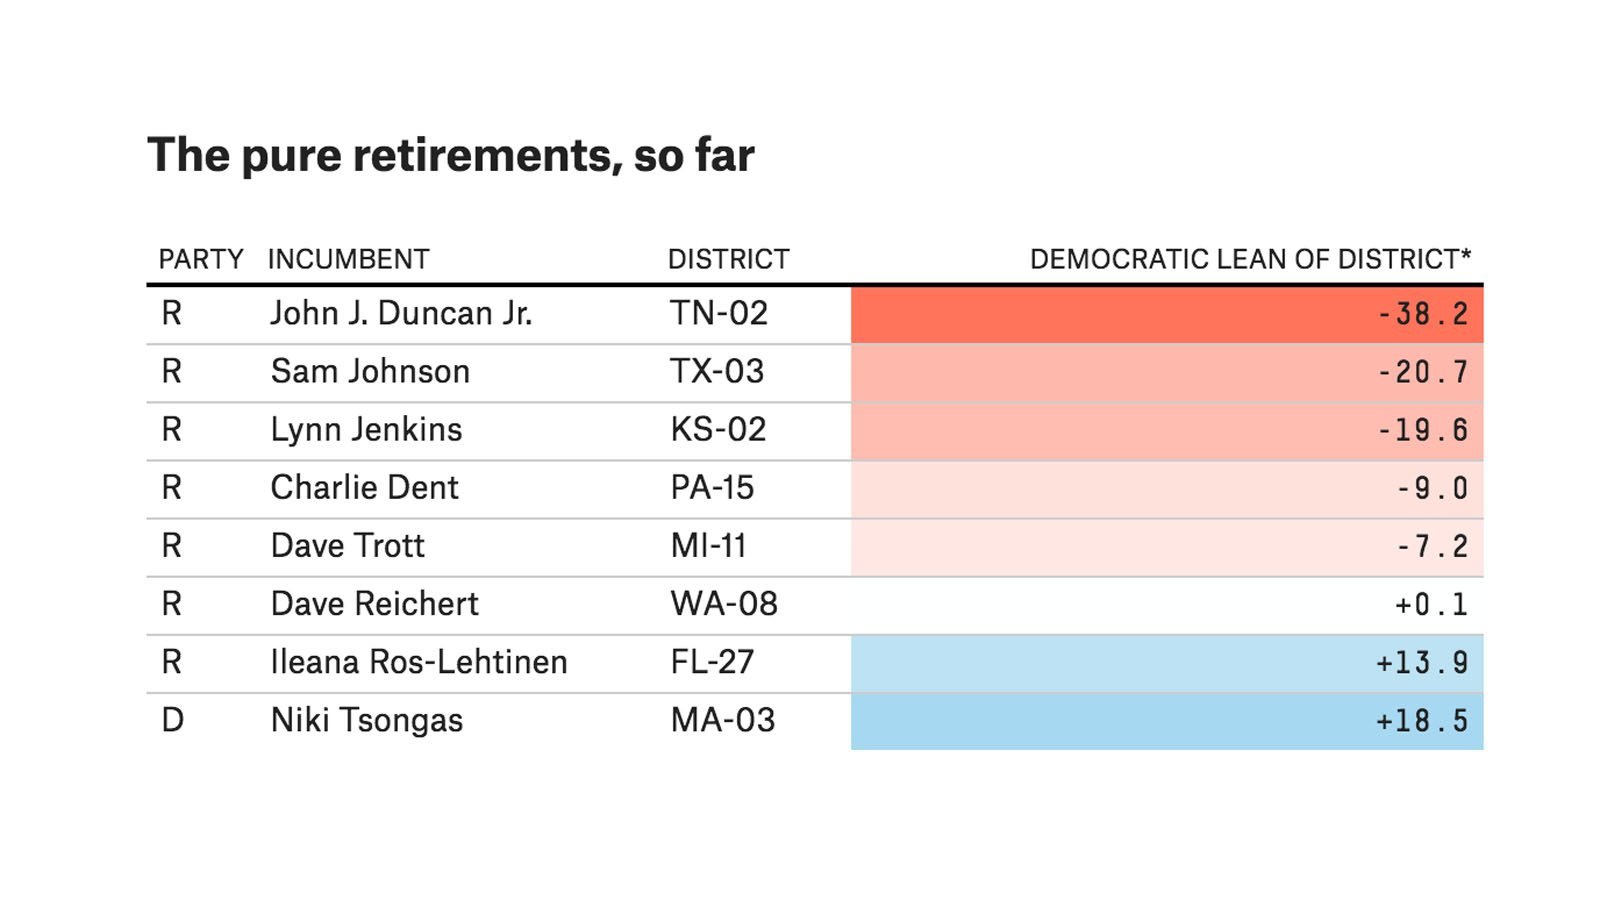 The recent rush of GOP retirements is good for Democrats. https://t.co/lX0lS0Eqah https://t.co/qfJZFJNkie